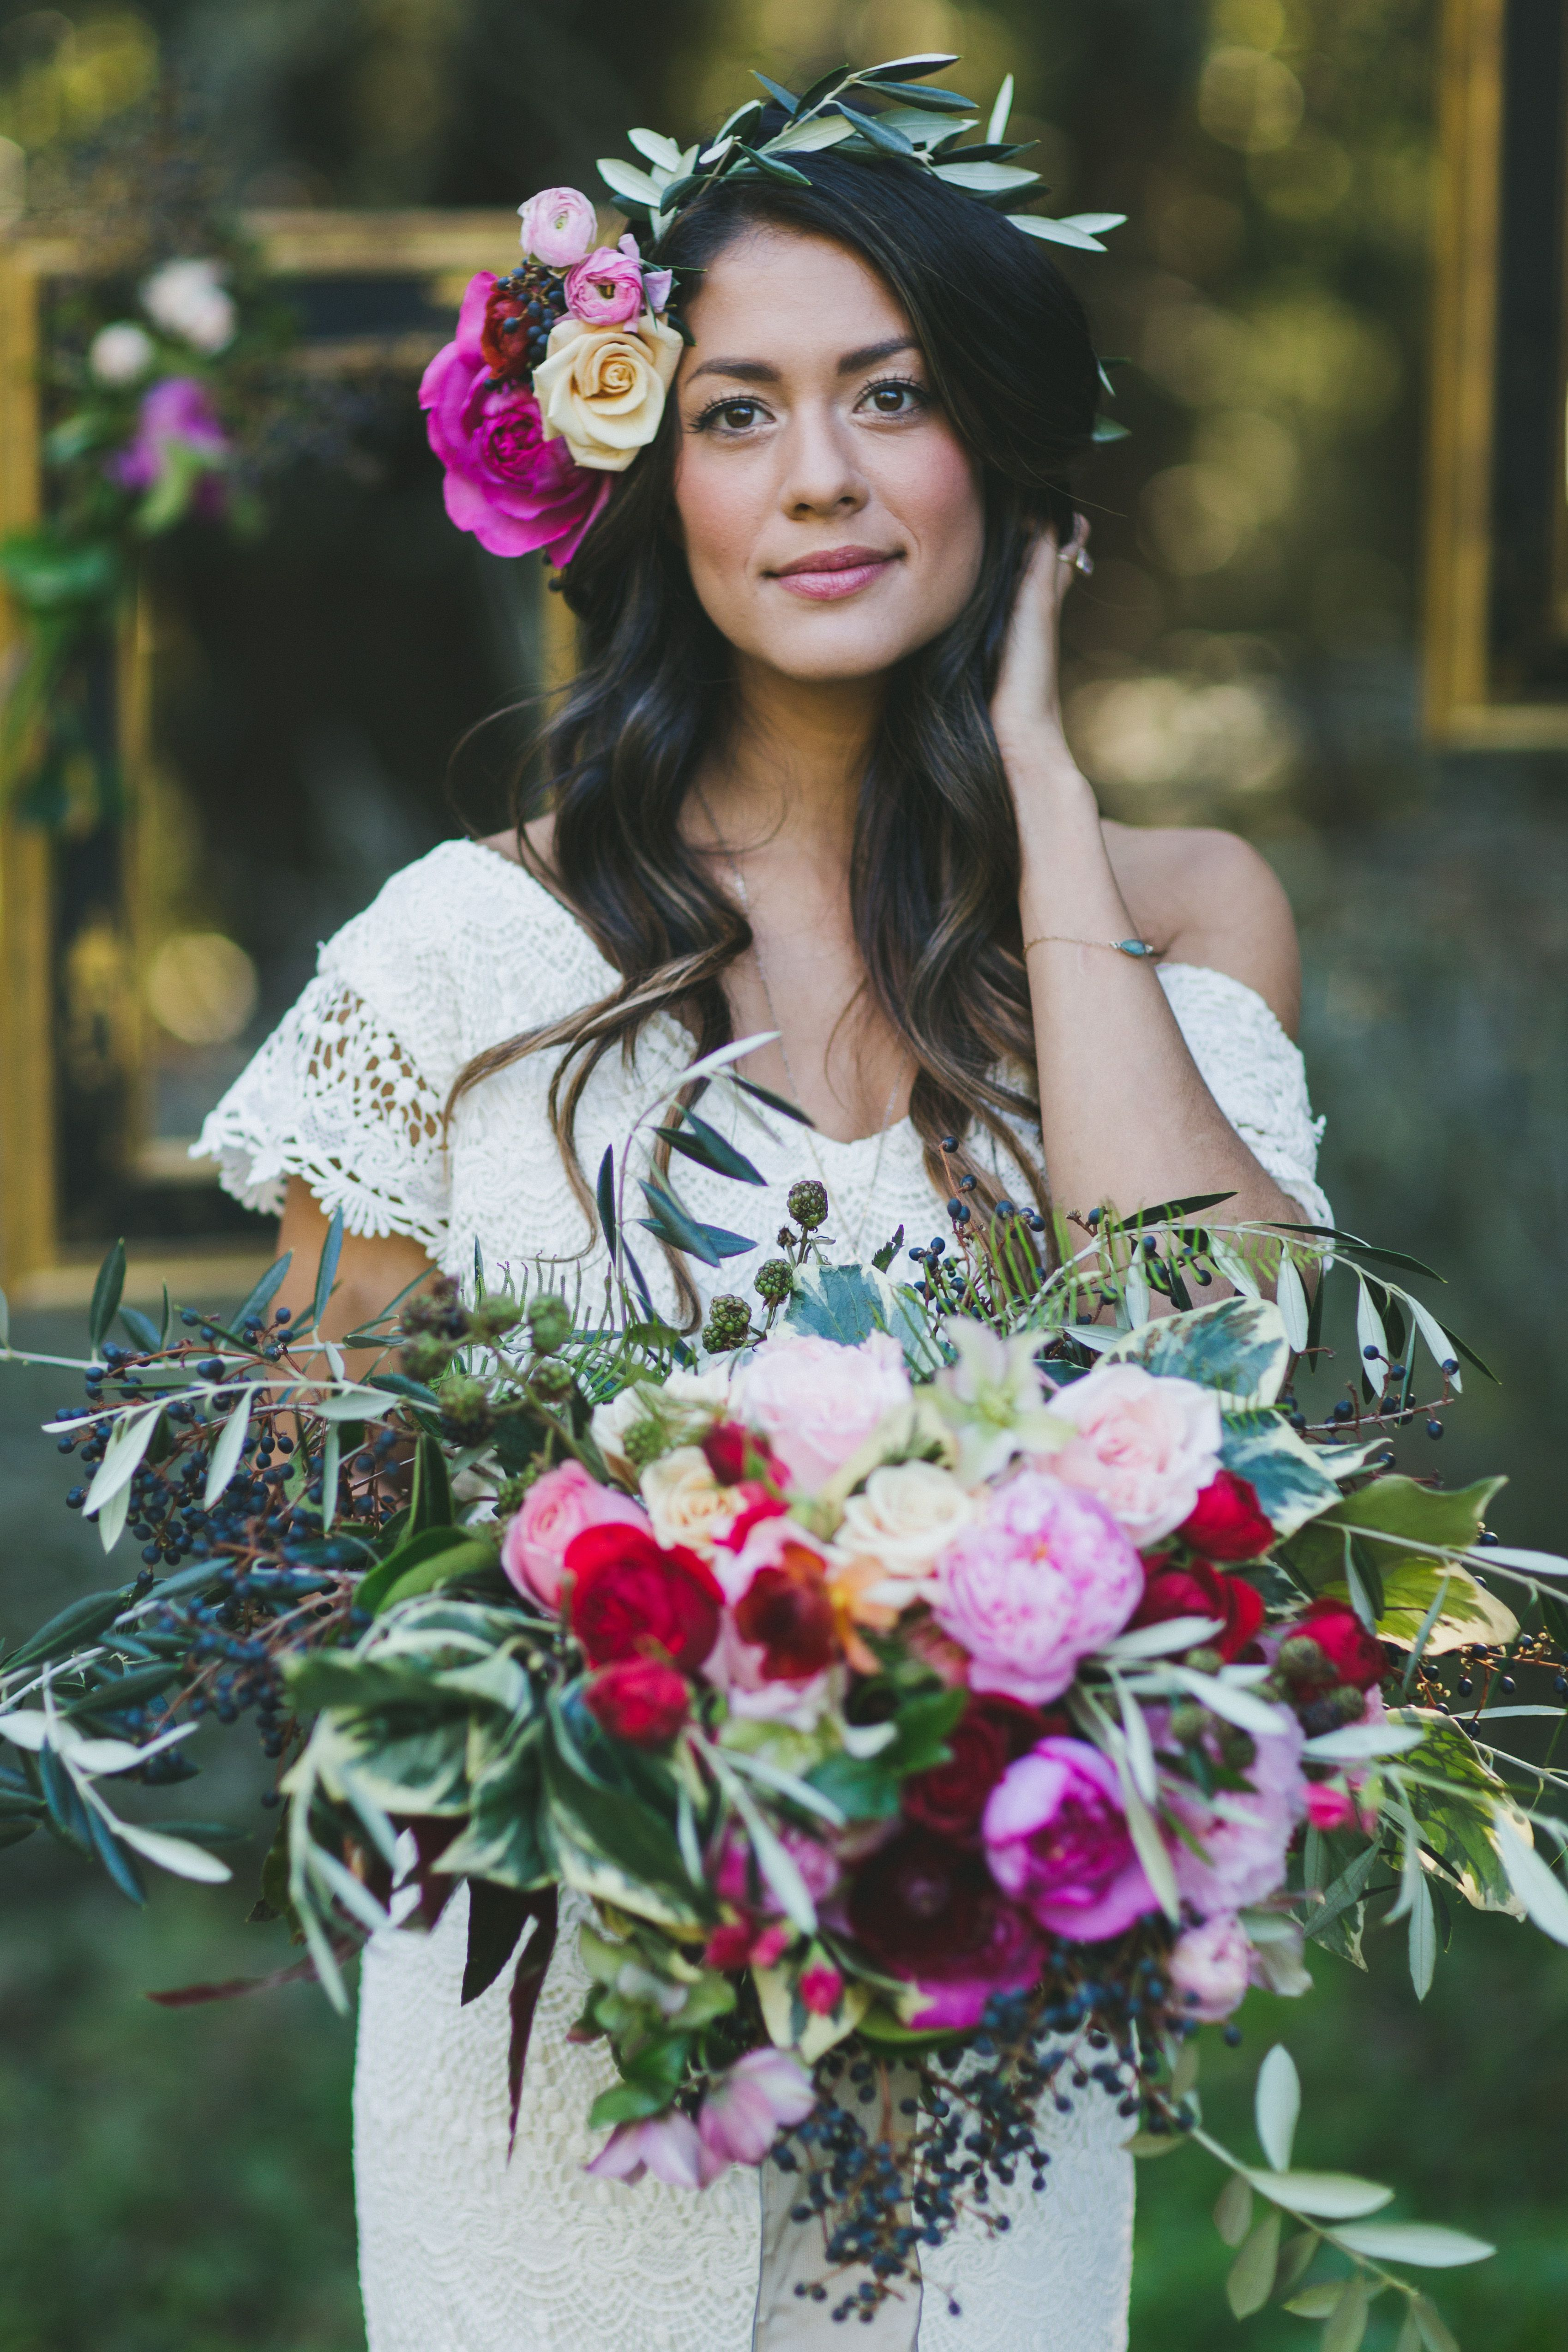 Boho Bride in Flower Crown Daughter s of Simone Dress and